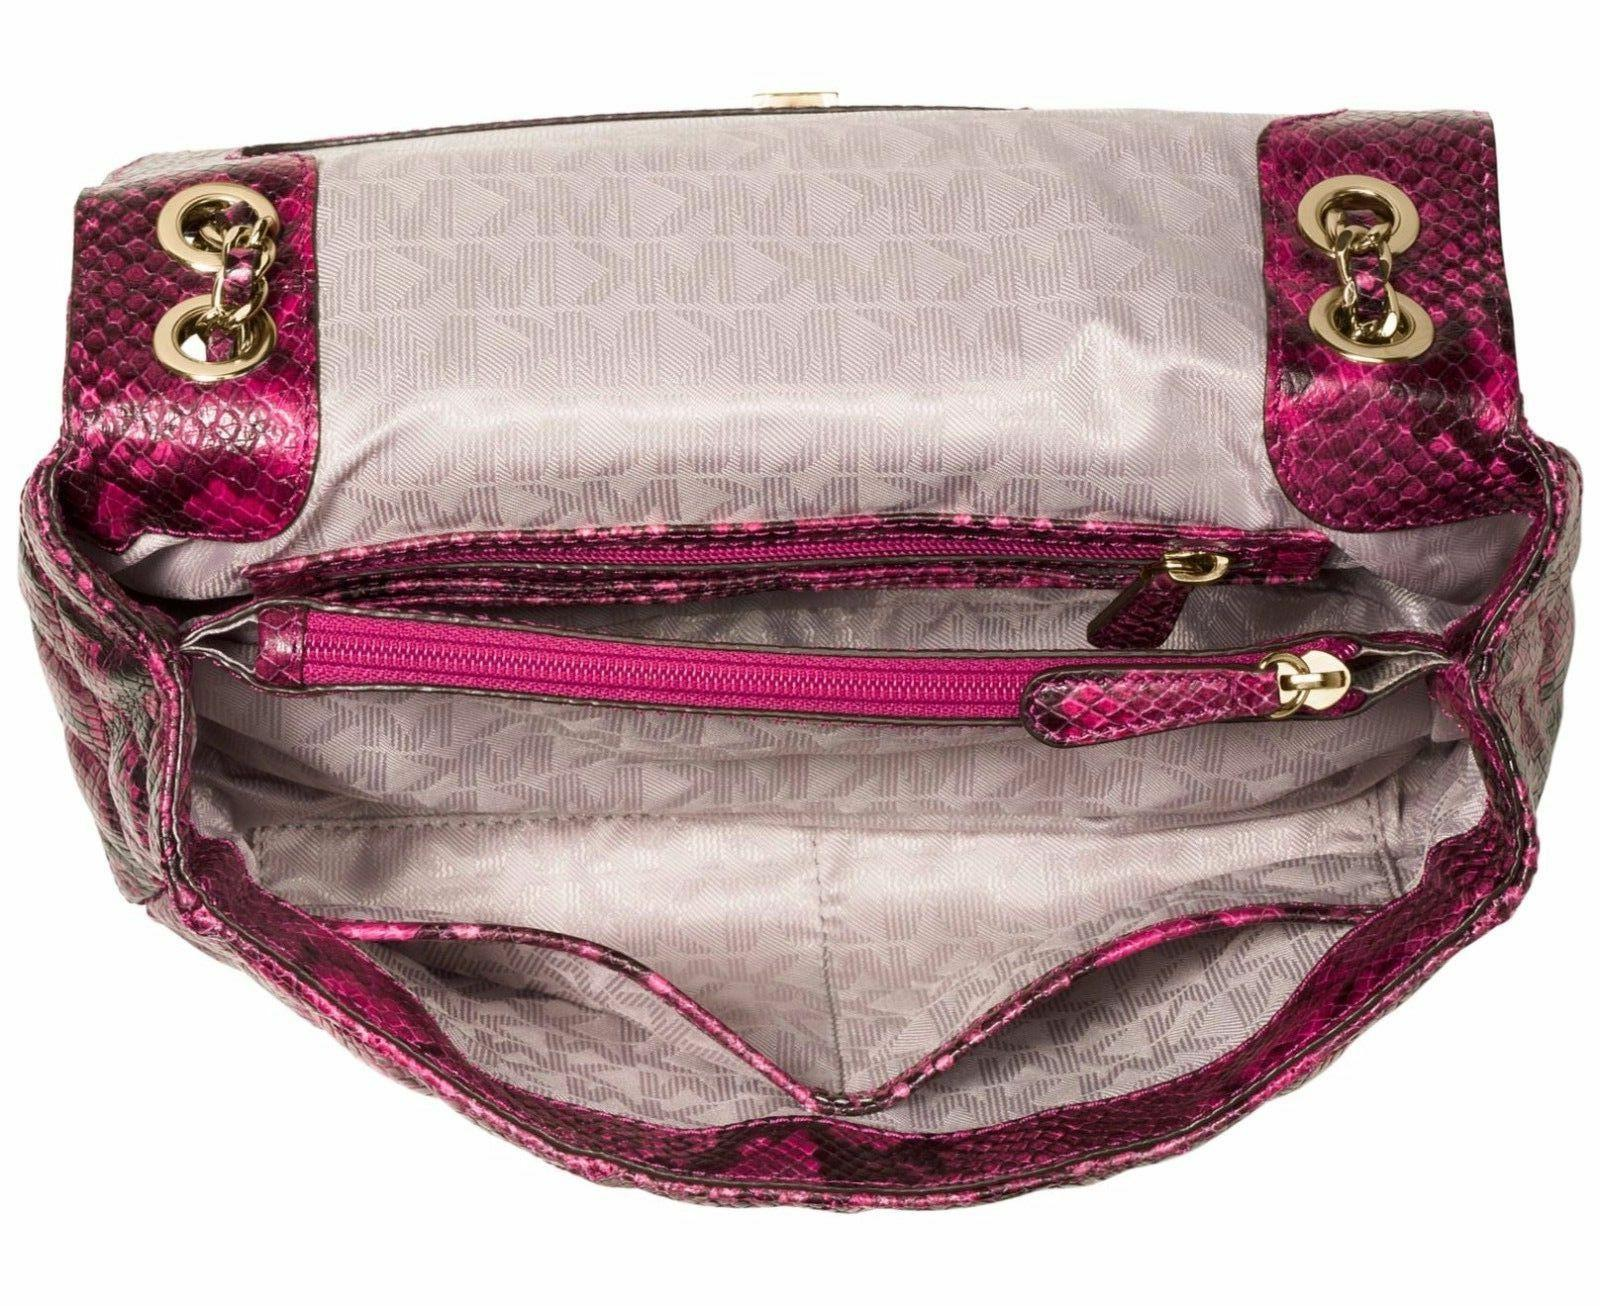 MICHAEL Kors L Quilted Leather Hobo Purse Pink New